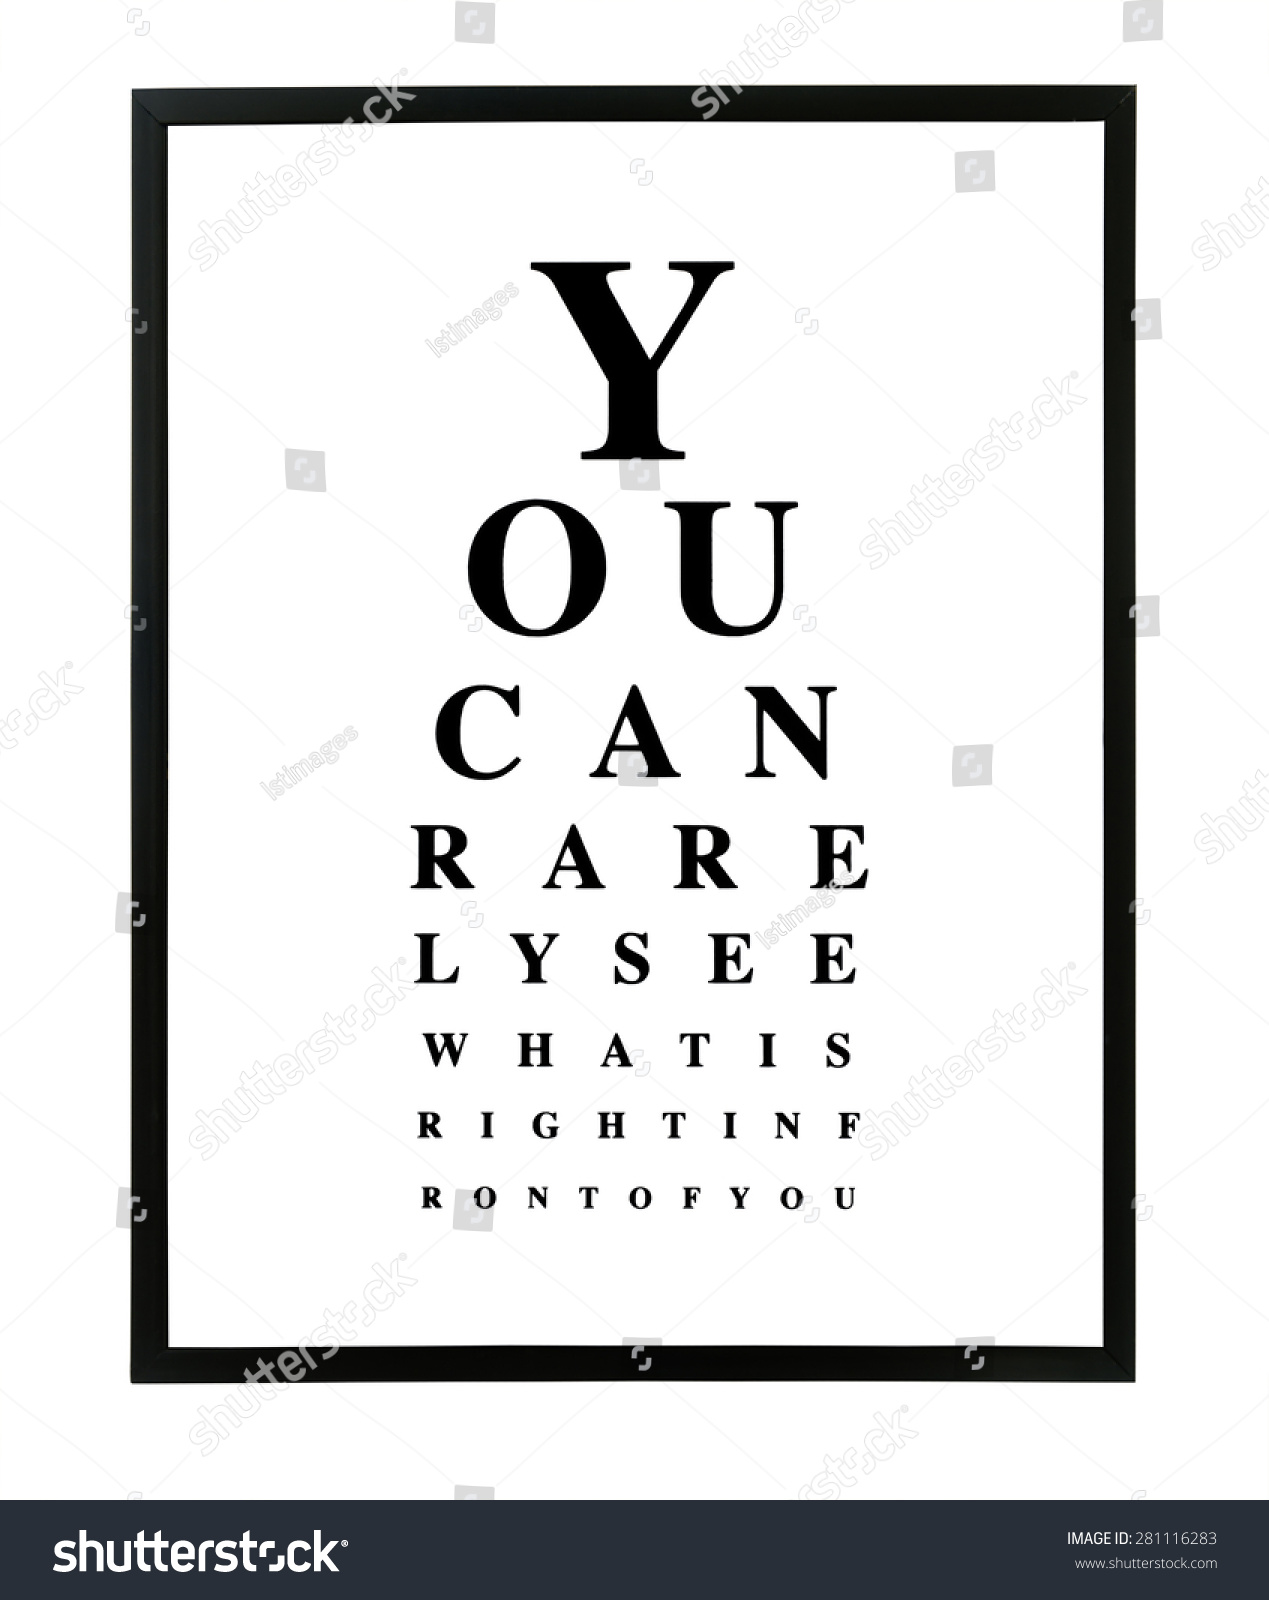 Funny eye test chart different sized stock illustration 281116283 funny eye test chart with different sized letters white background with black letters chart nvjuhfo Images